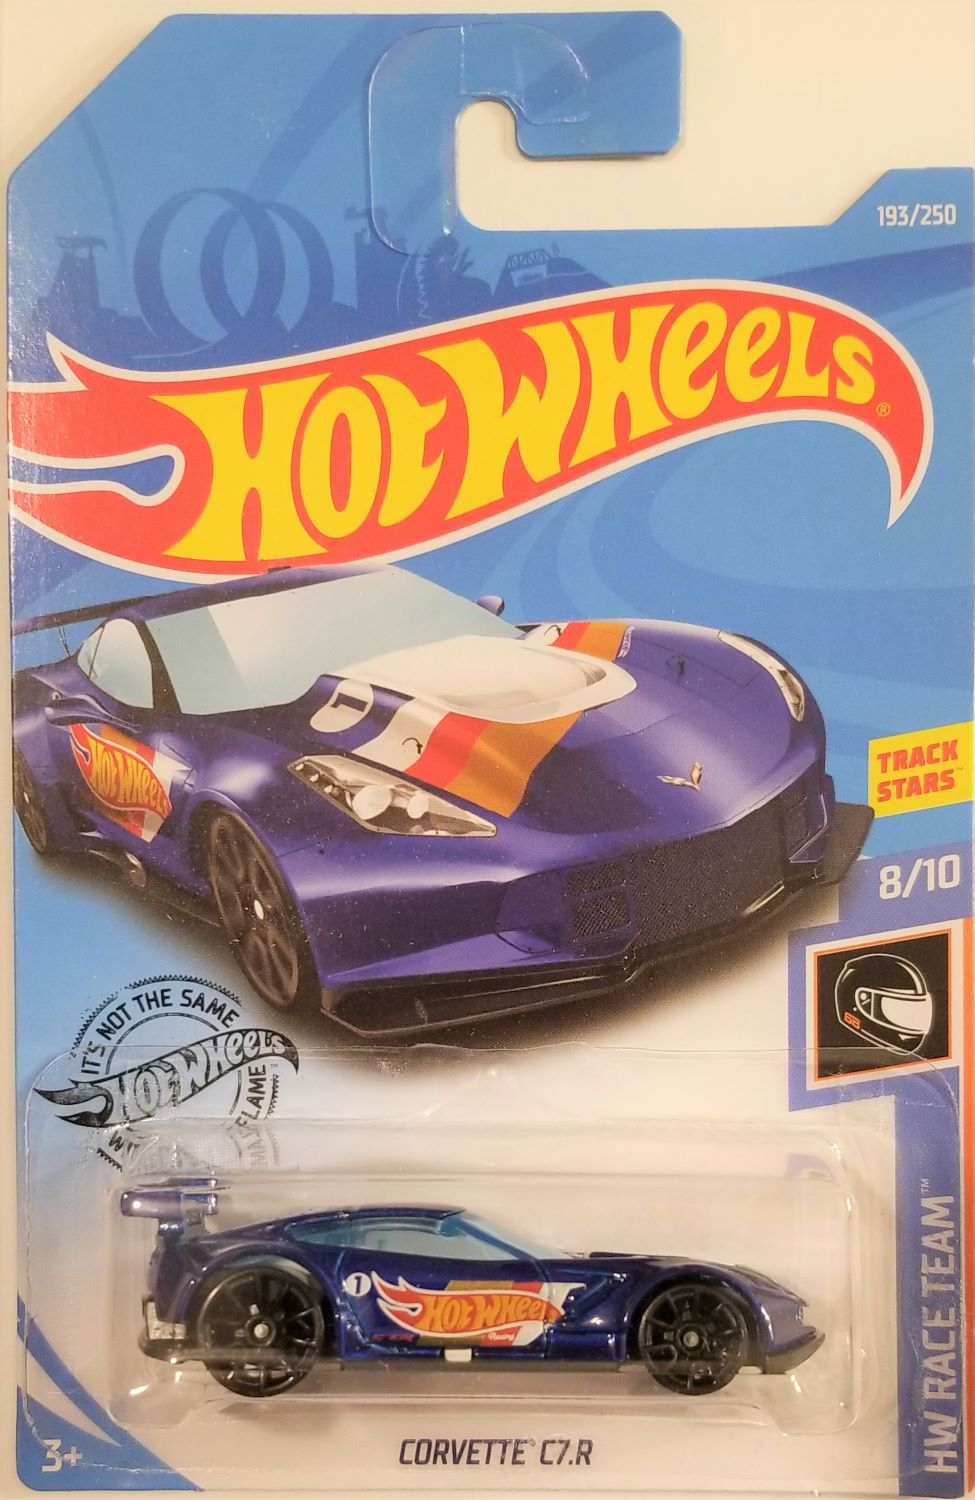 Hot Wheels 2019 Hw Race Team 8 10 Corvette C7 R 193 250